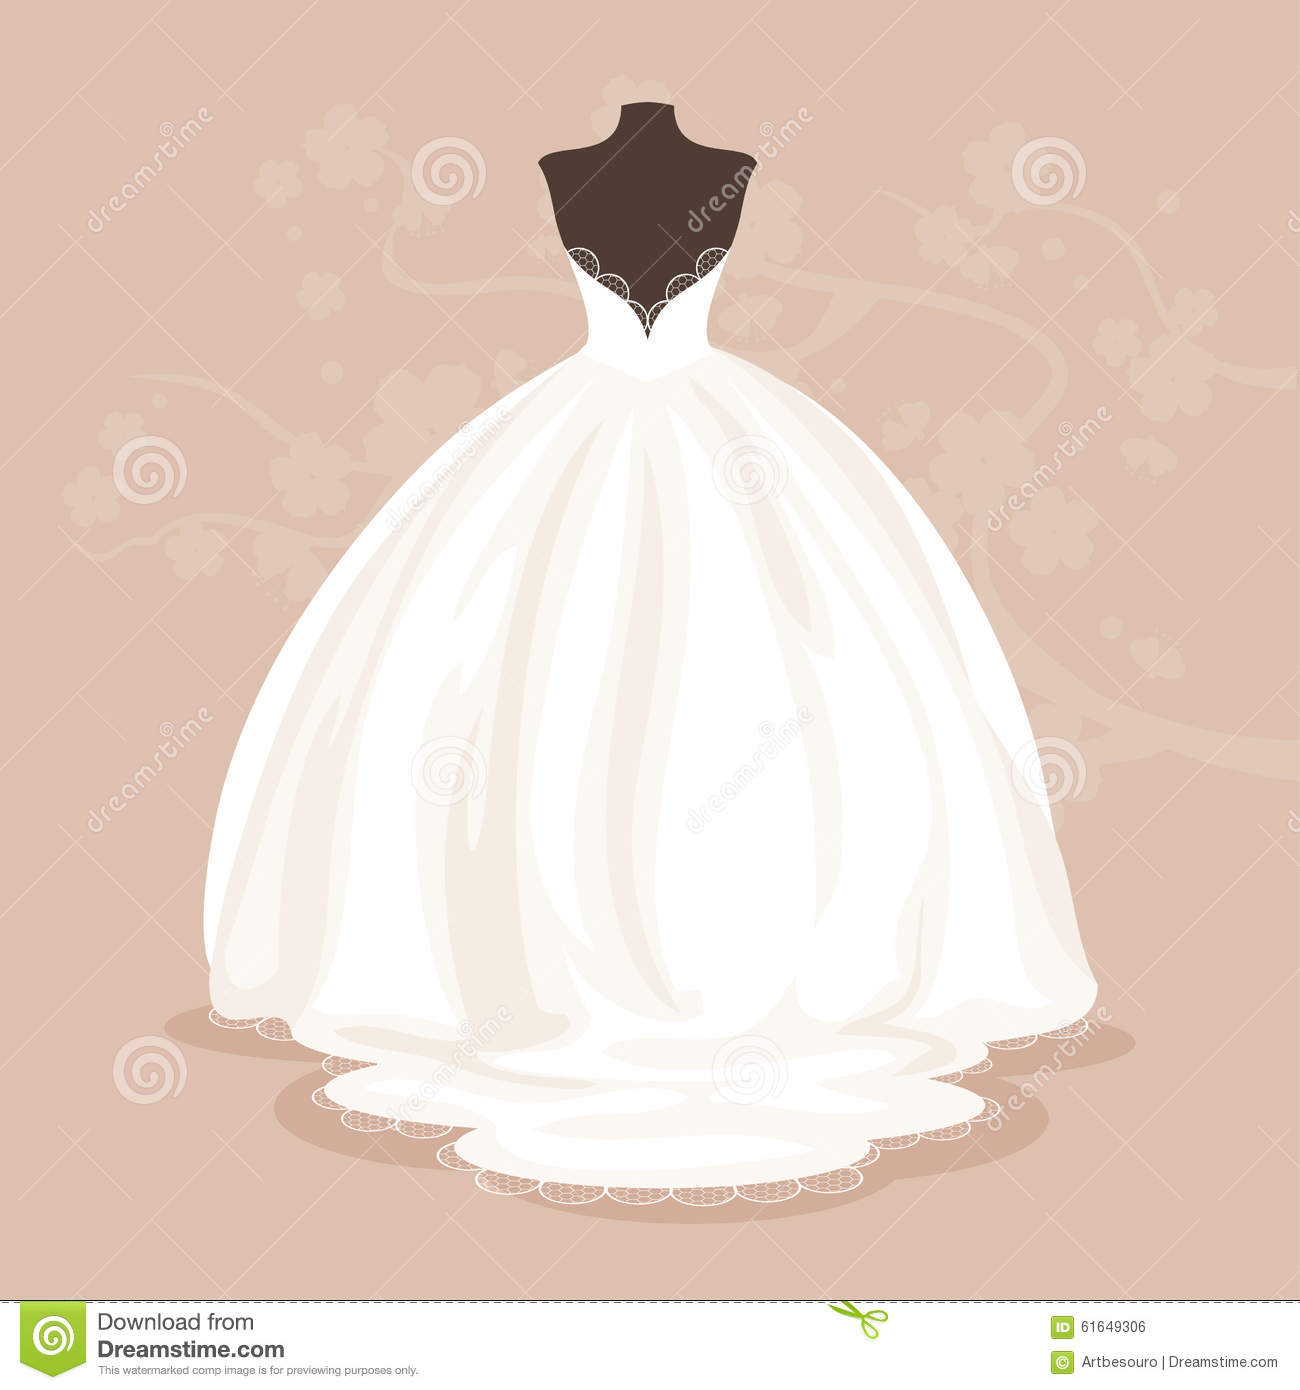 vector clipart wedding dress